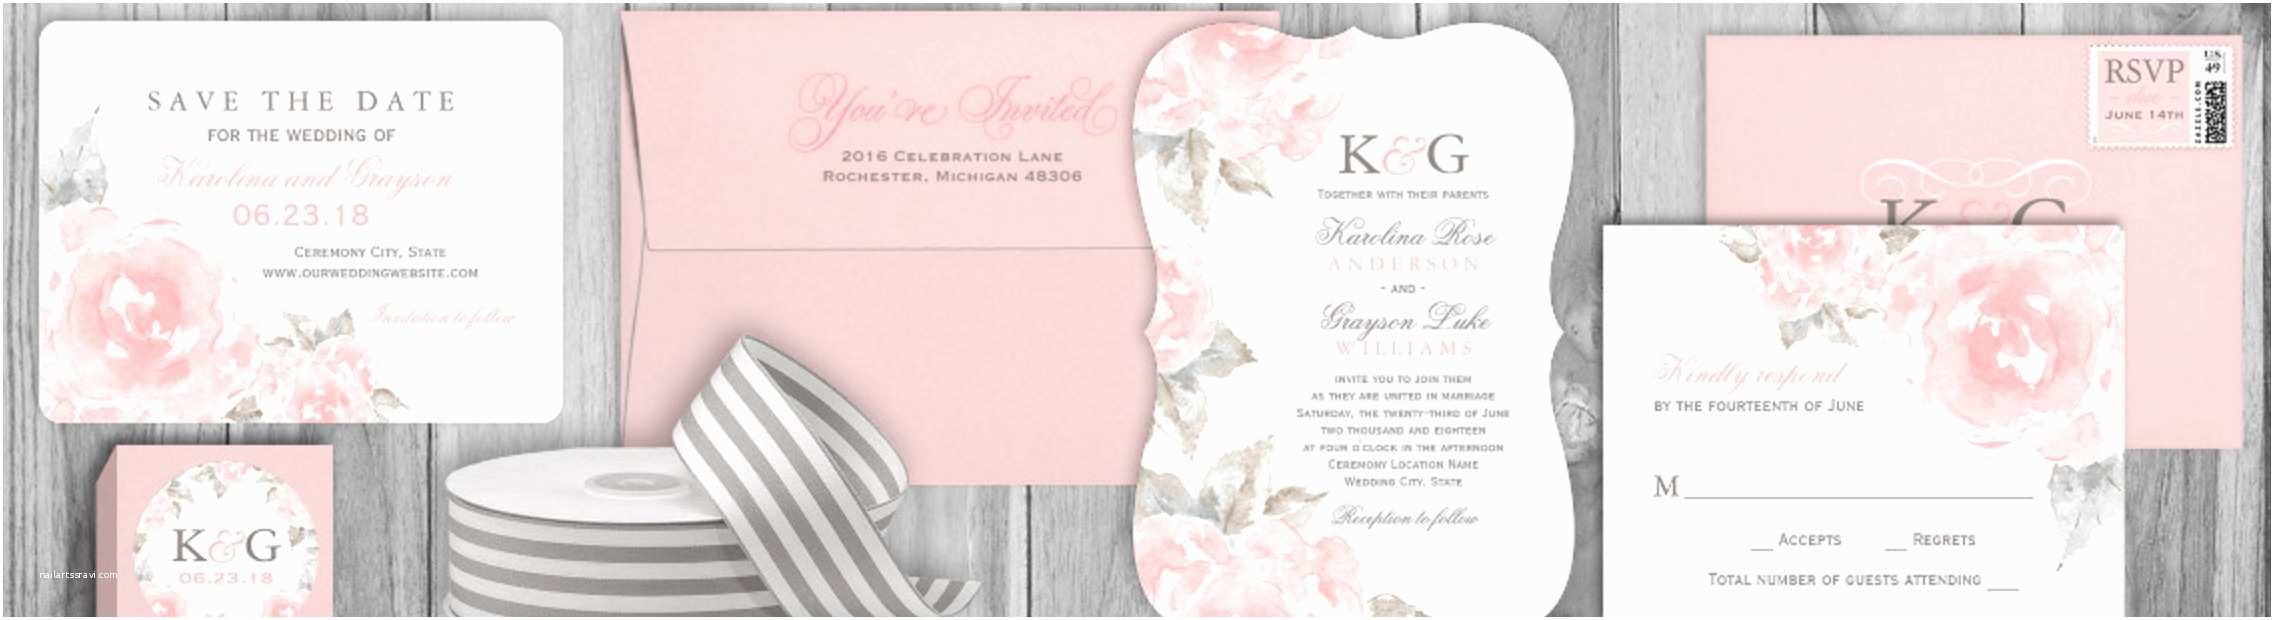 Pink and Gray Wedding Invitations Pink Rose Wedding Invitations